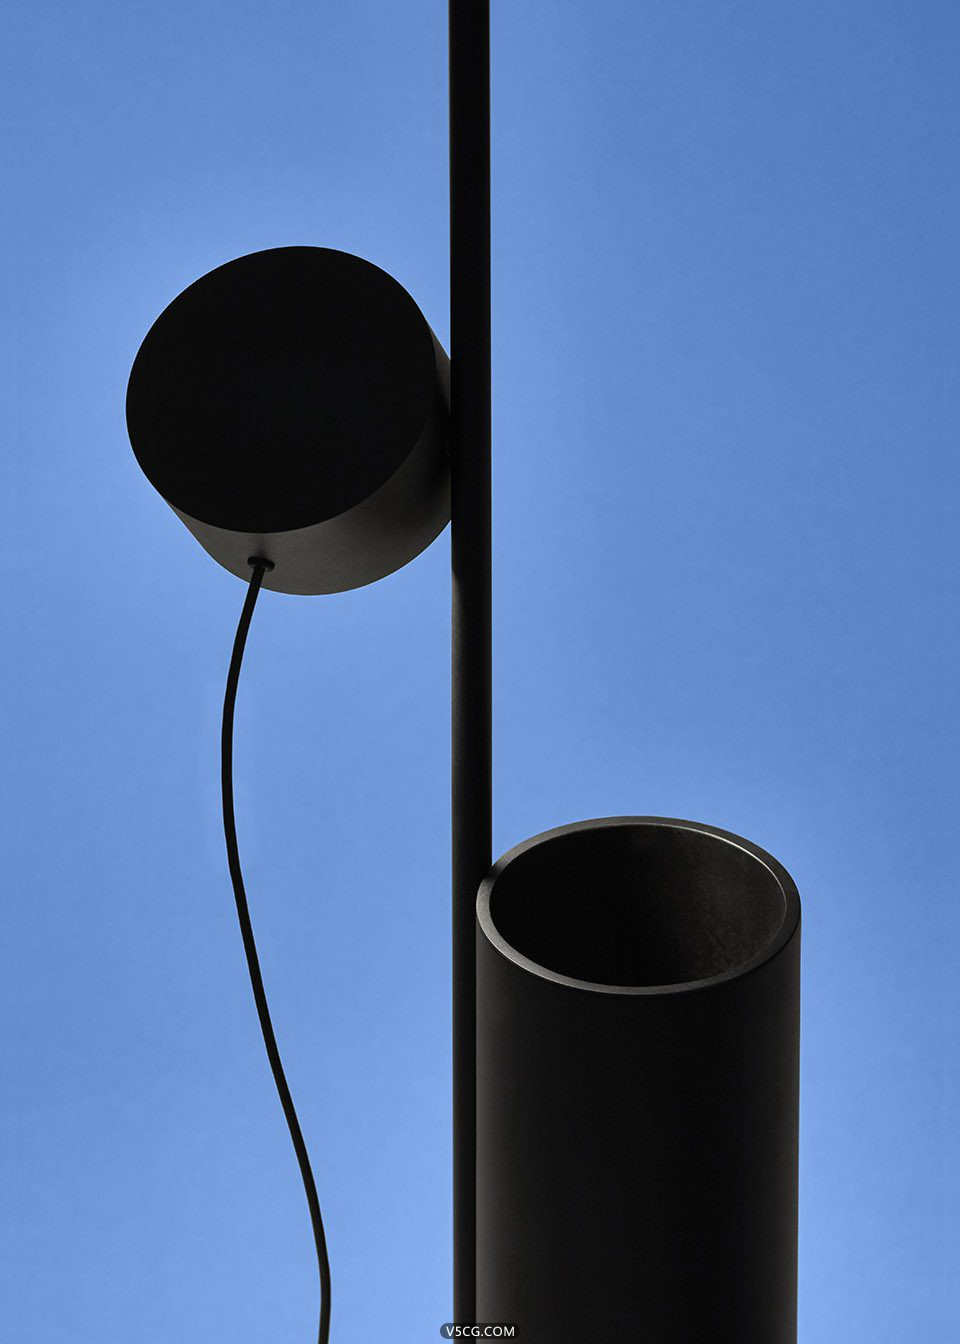 007-Lamp-Family-by-Earnest-Studio-960x1344.jpg